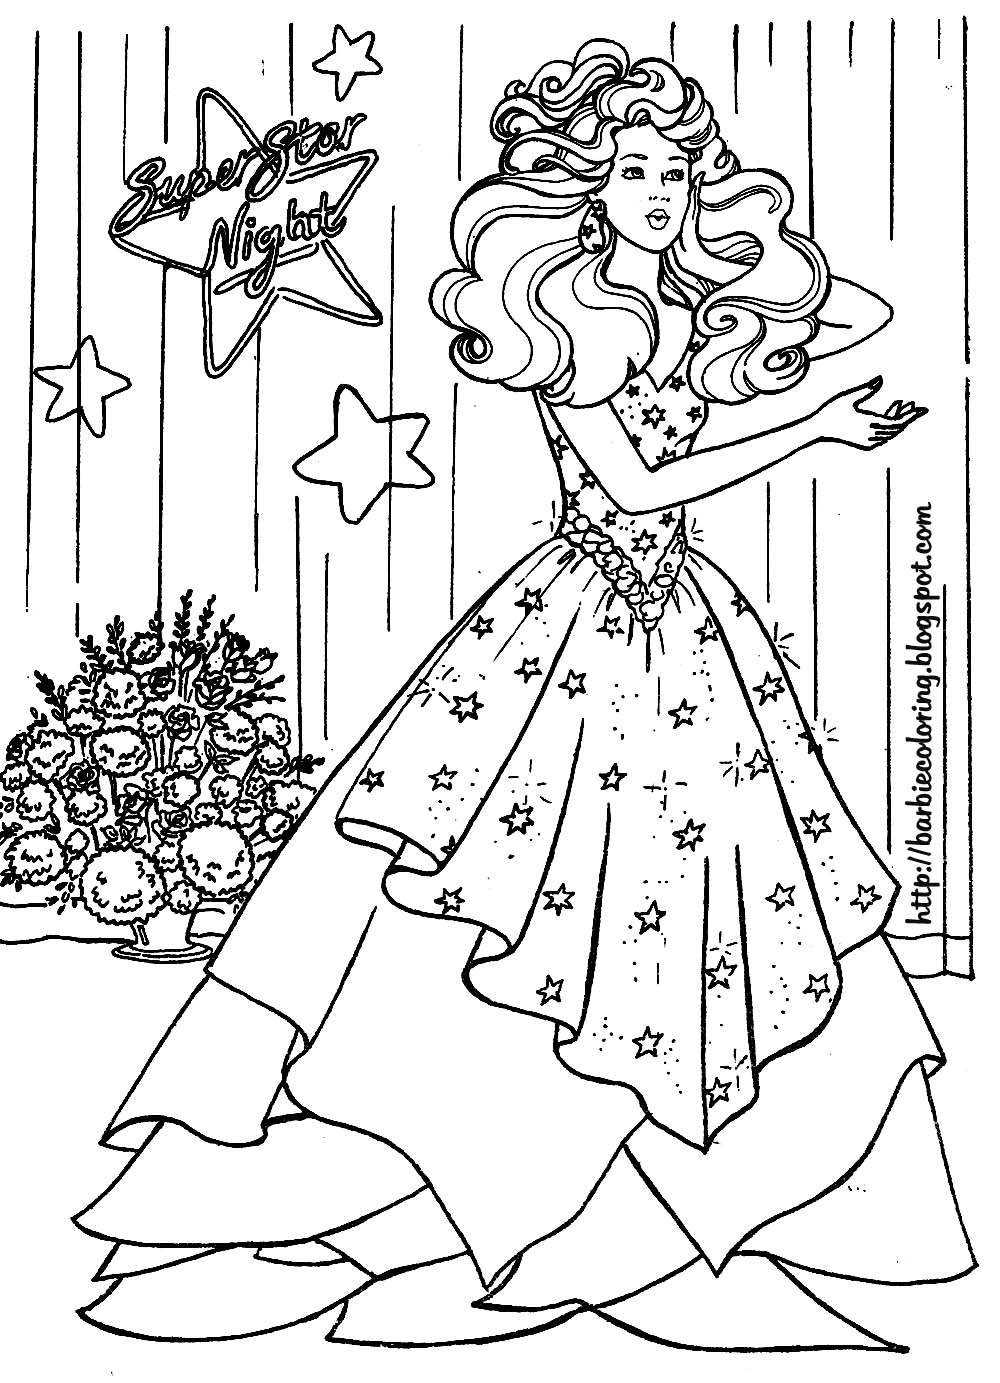 free barbie halloween coloring pages - photo#41